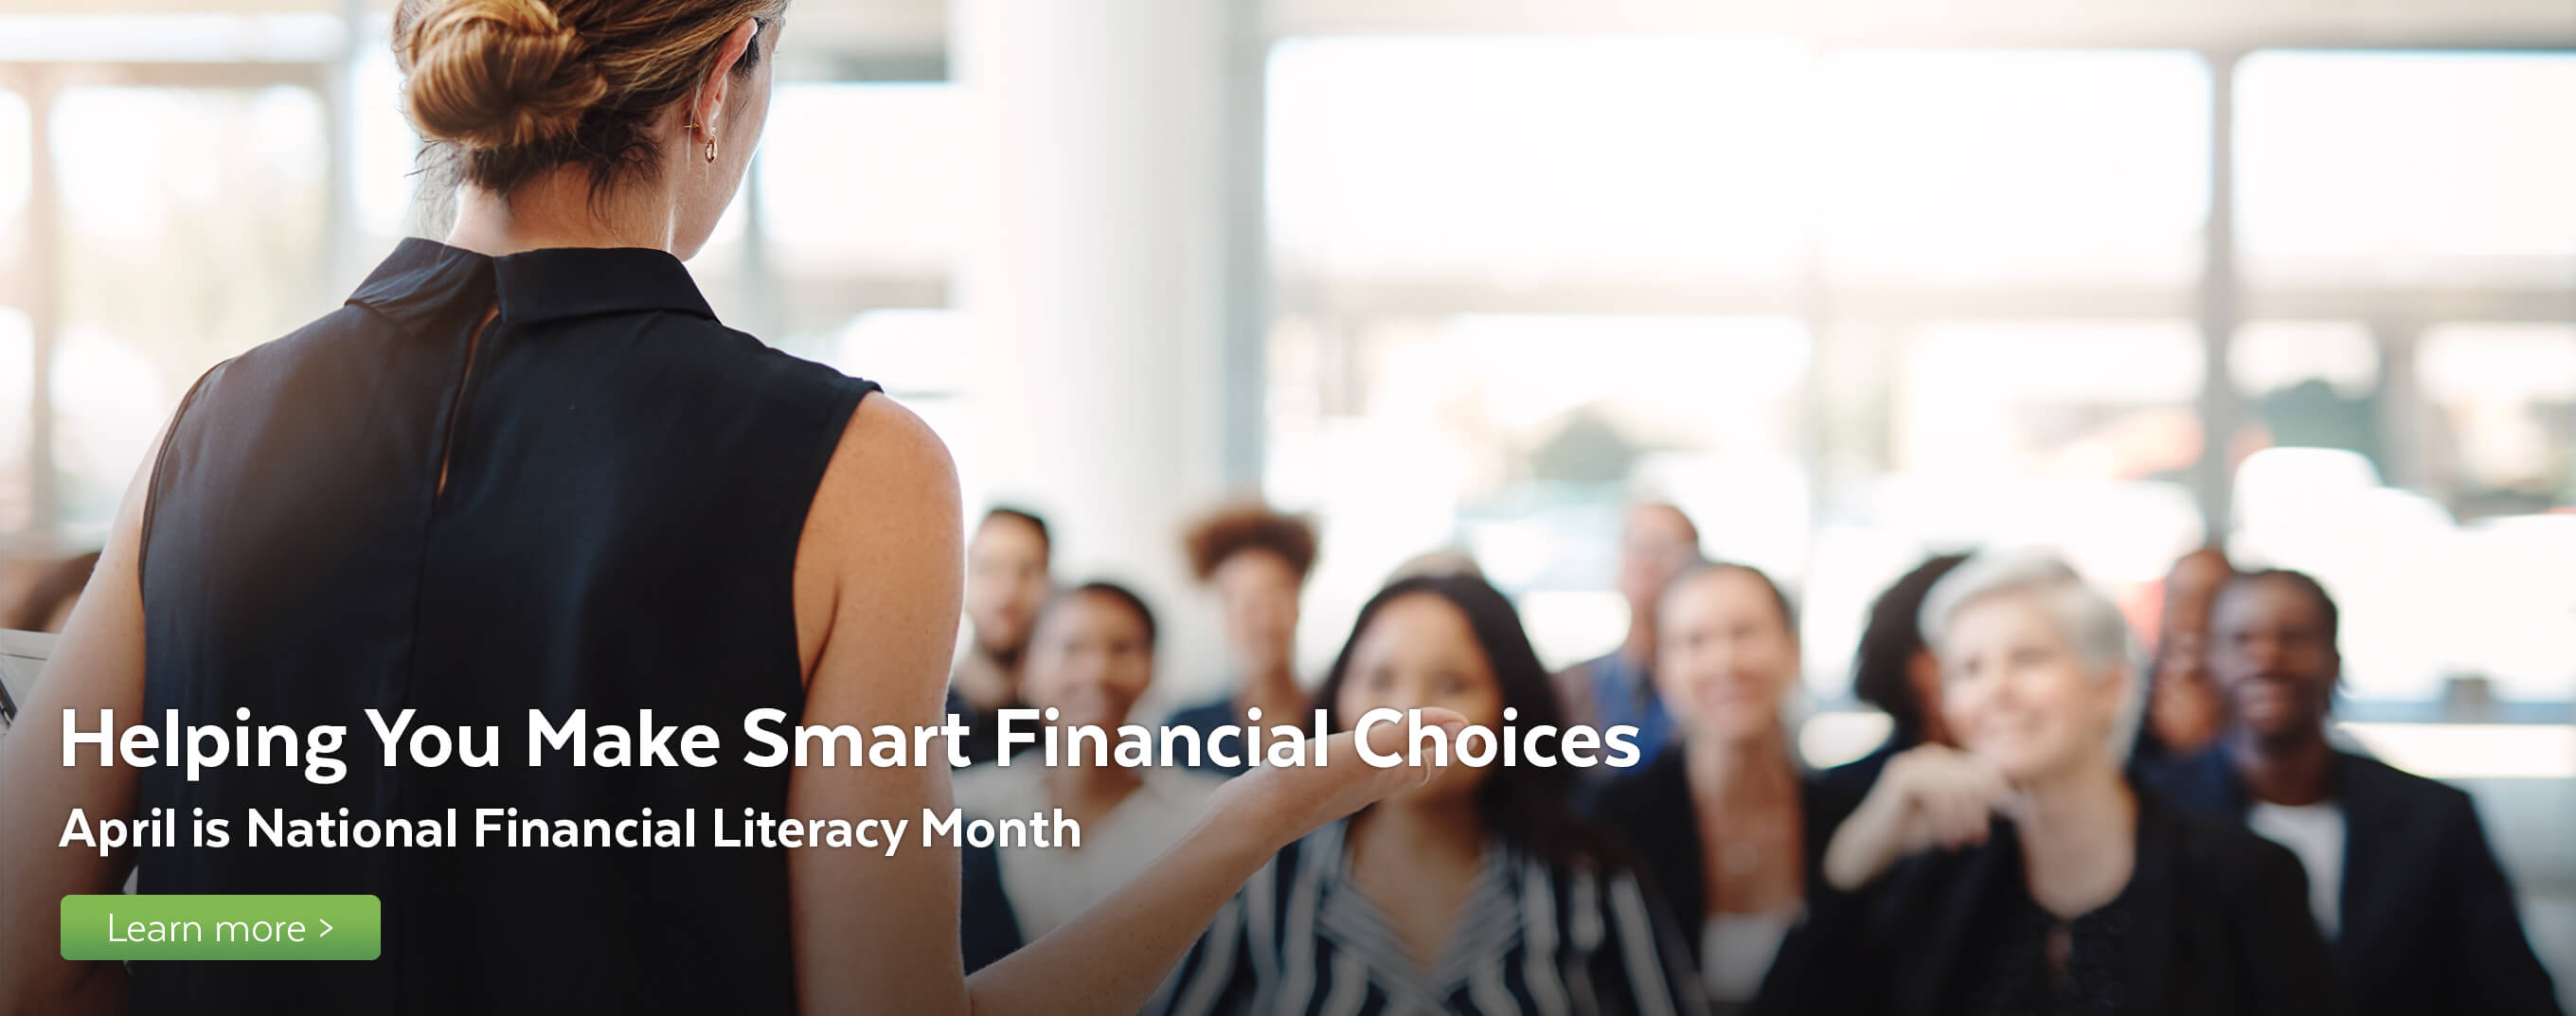 Helping you make smart financial choices.